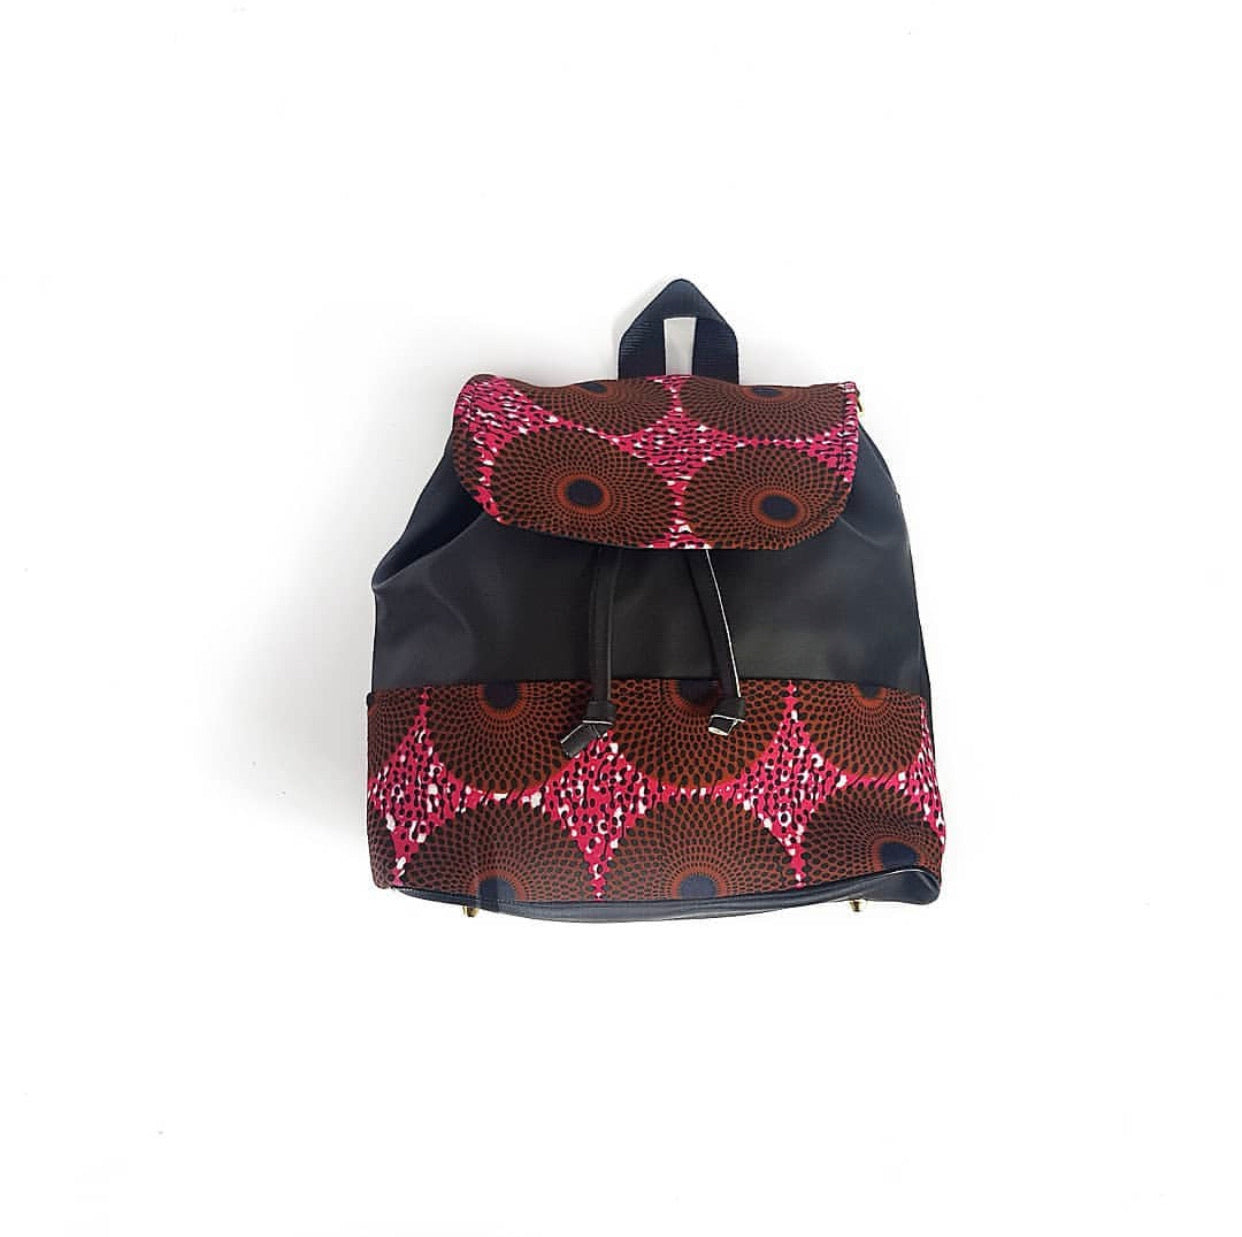 Black multiway backpack with african print overlay in pink and brown ankara wax print